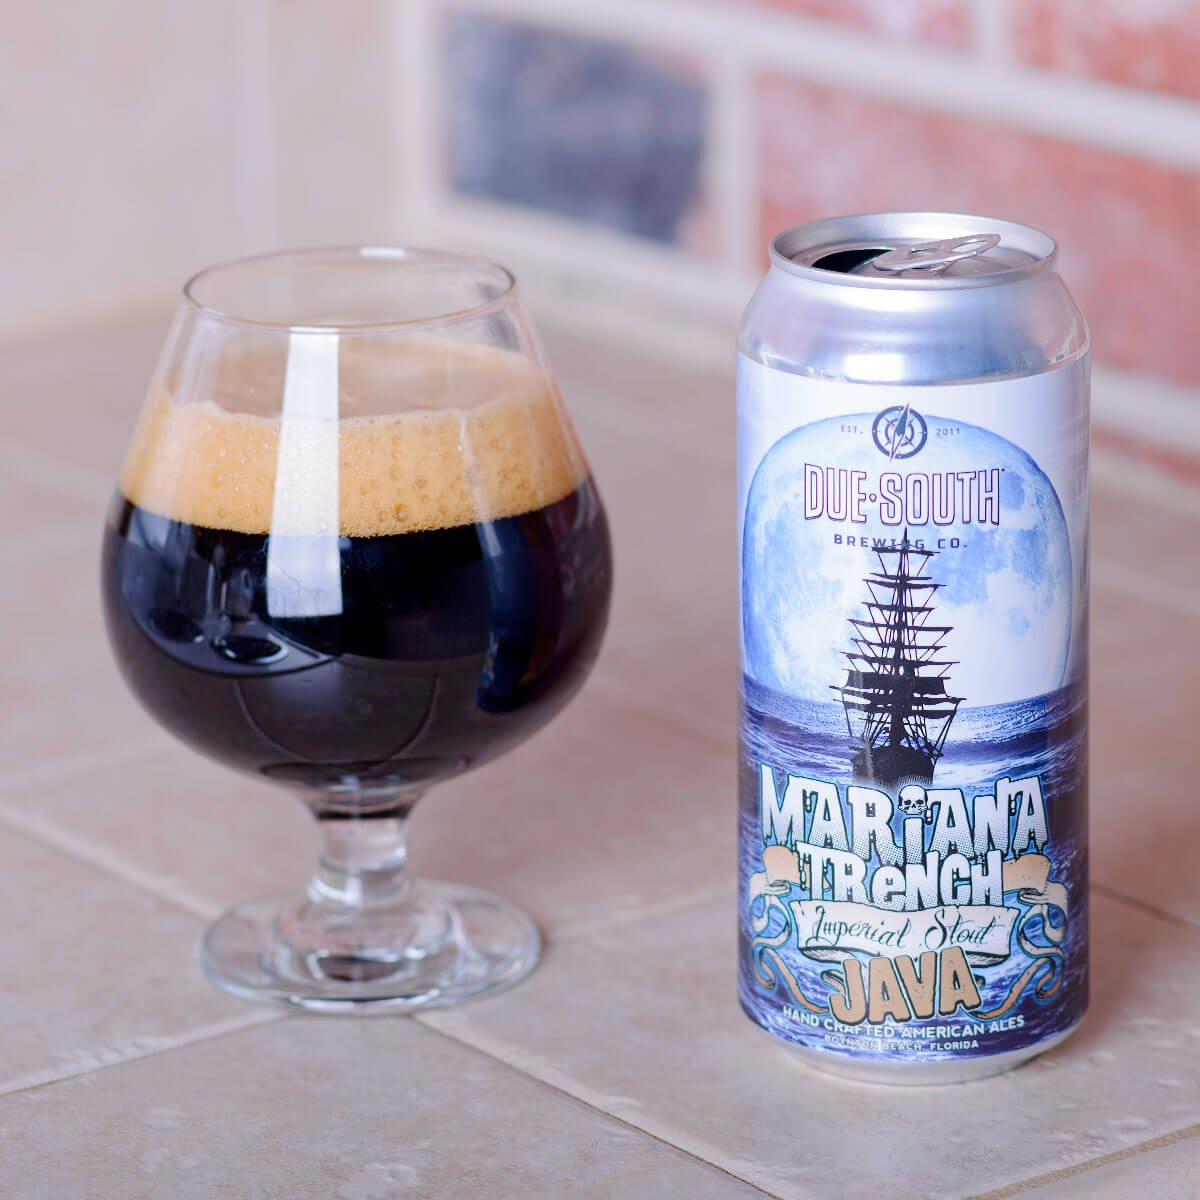 Java Mariana Trench, an American Imperial Stout by Due South Brewing Co.